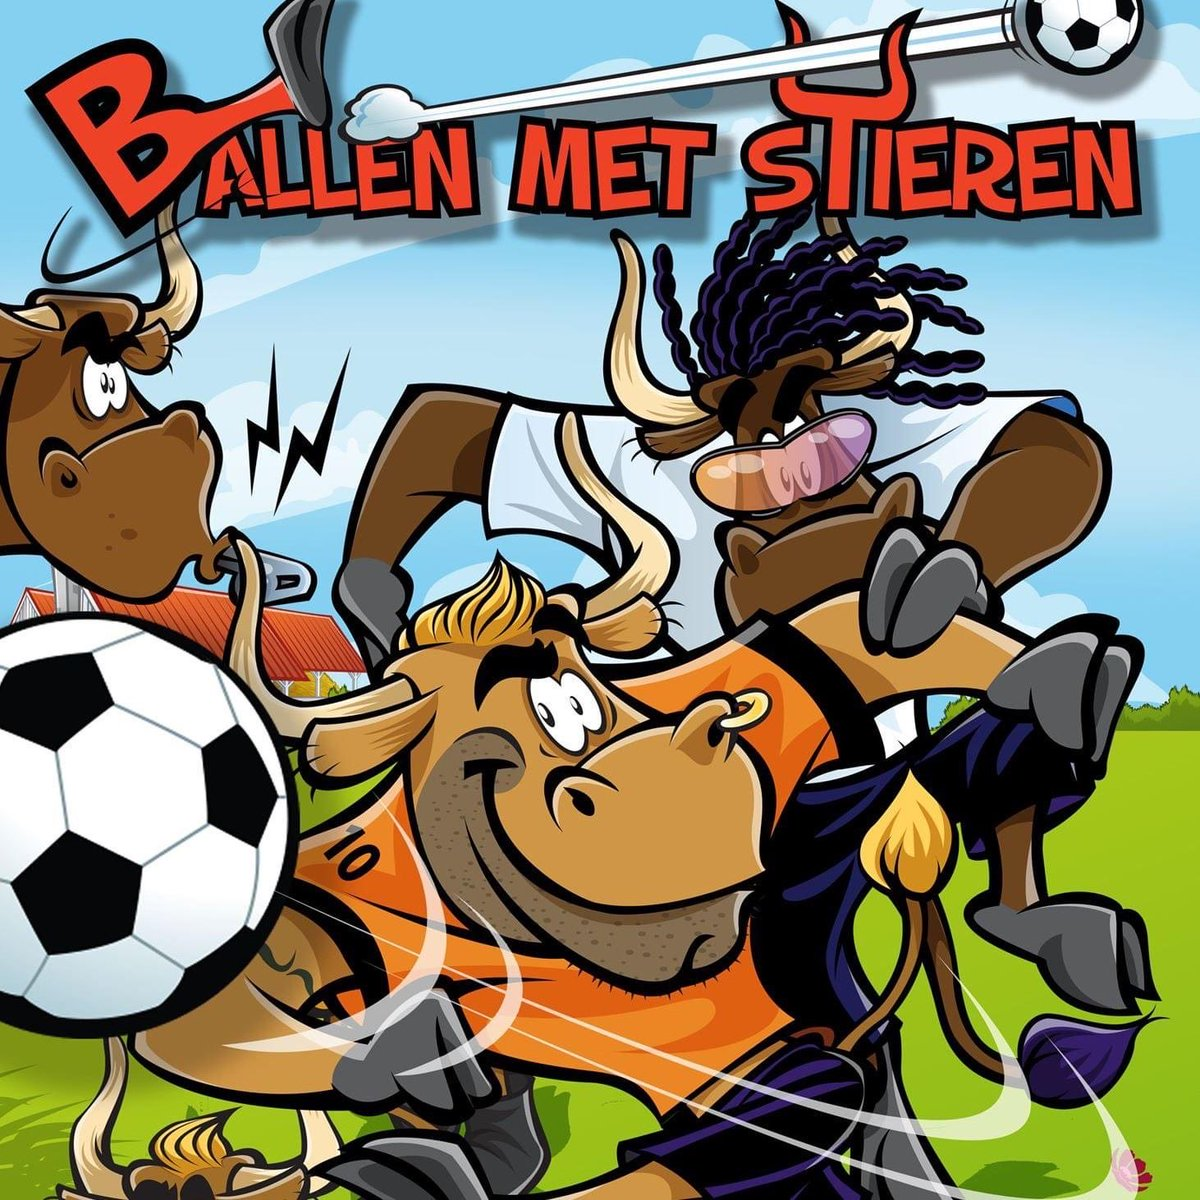 test Twitter Media - The Game Master komt in juni met het tweepersoonskaartspel Ballen met Stieren. https://t.co/b3ofXydWR0